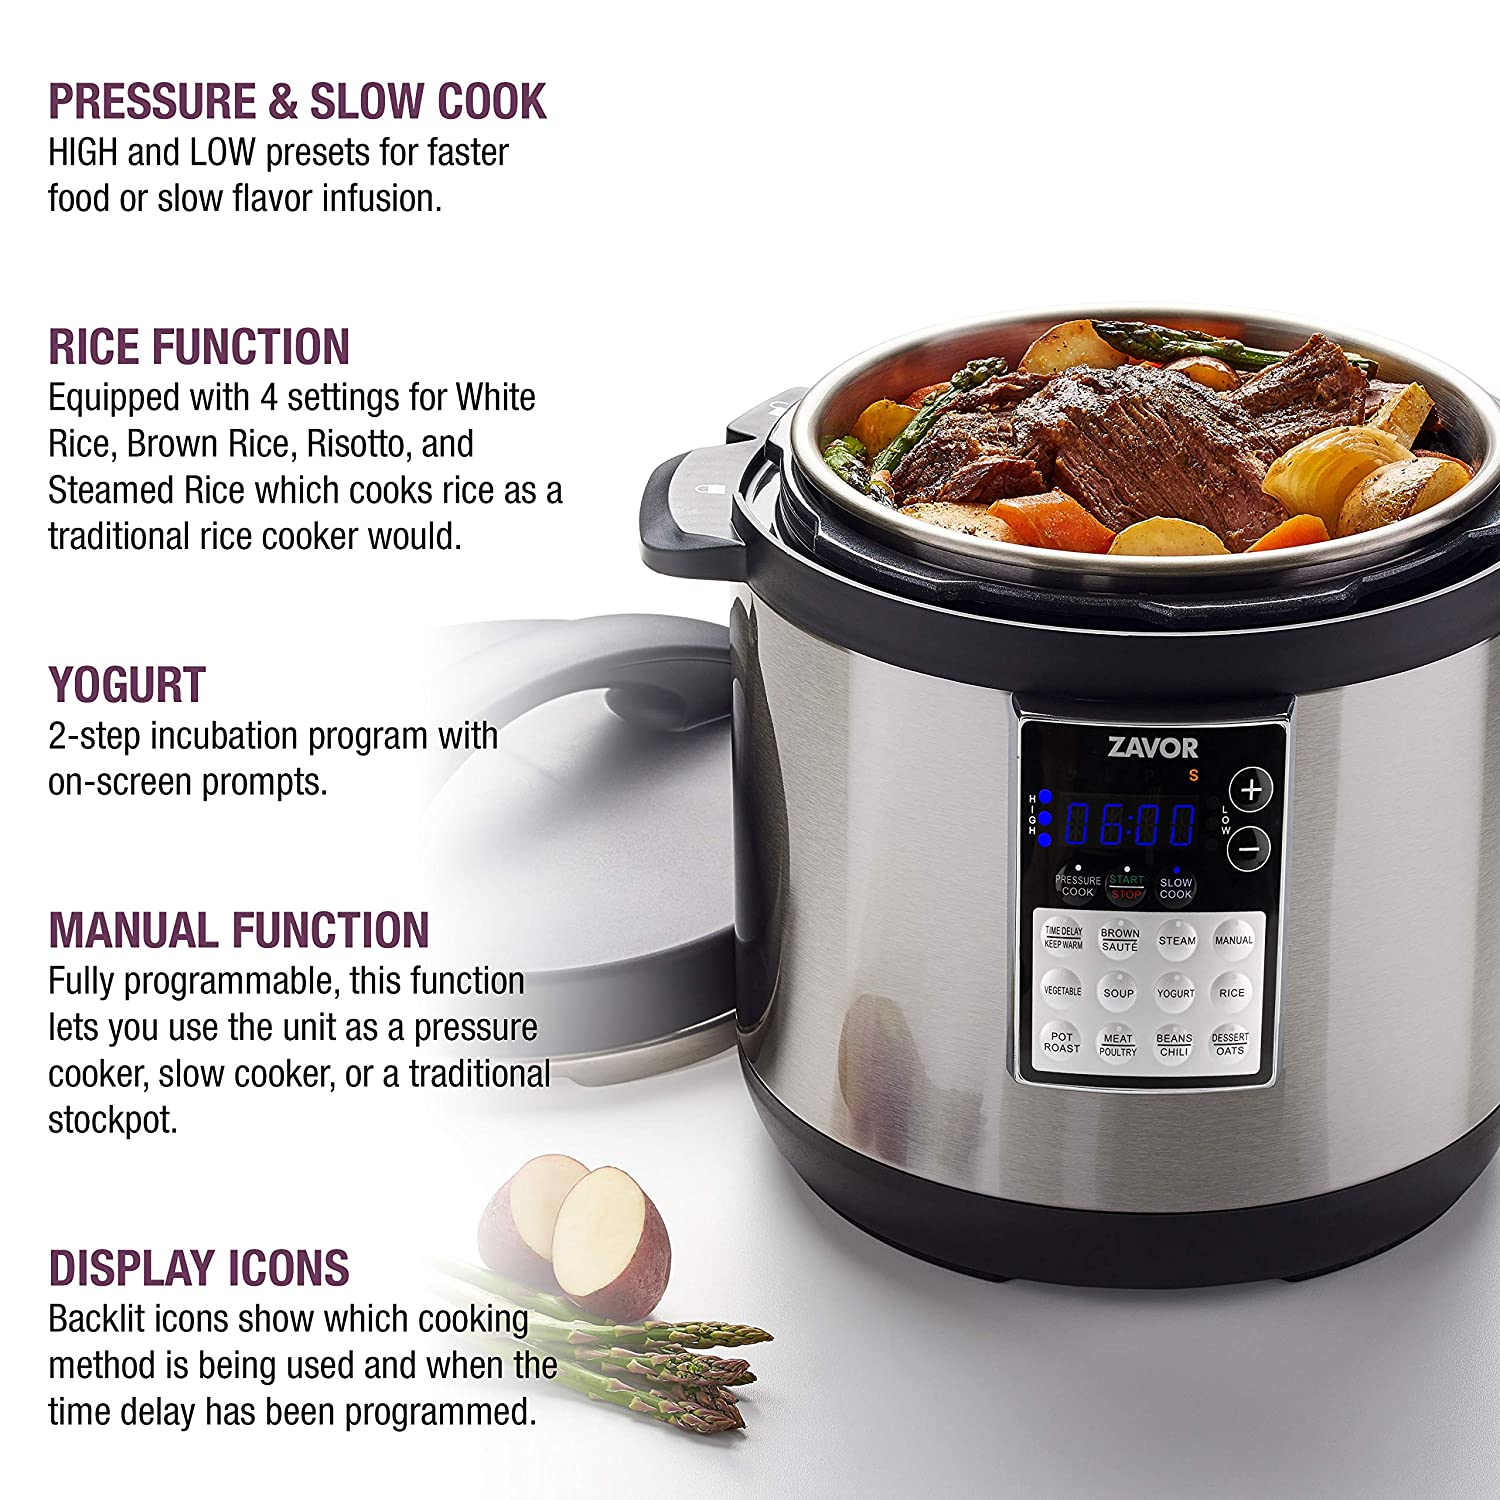 Amazon.com: LUX Edge MultiCooker: Kitchen & Dining